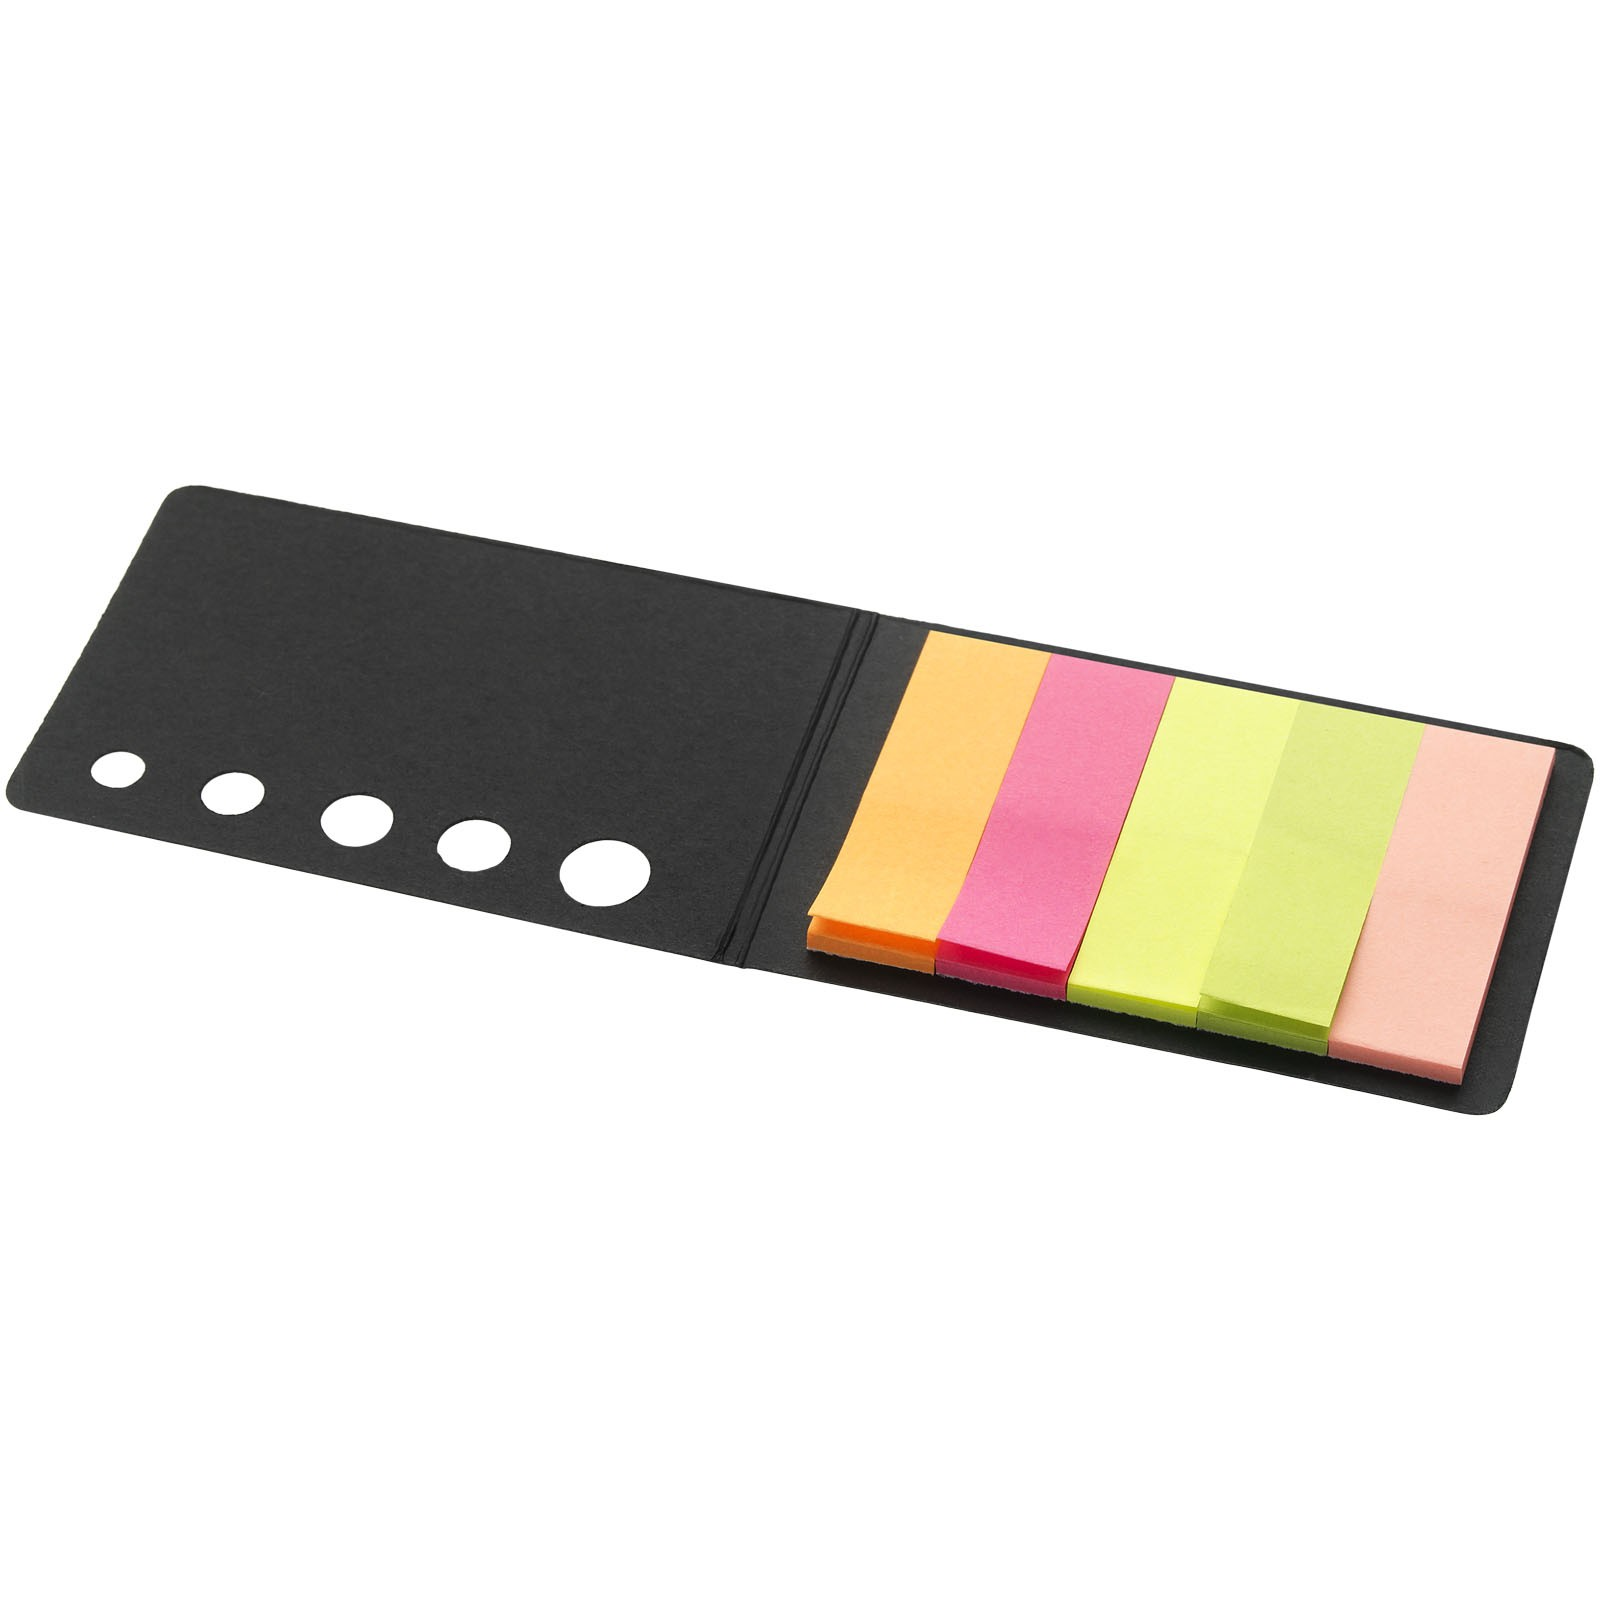 Fergason coloured sticky notes set - Solid black